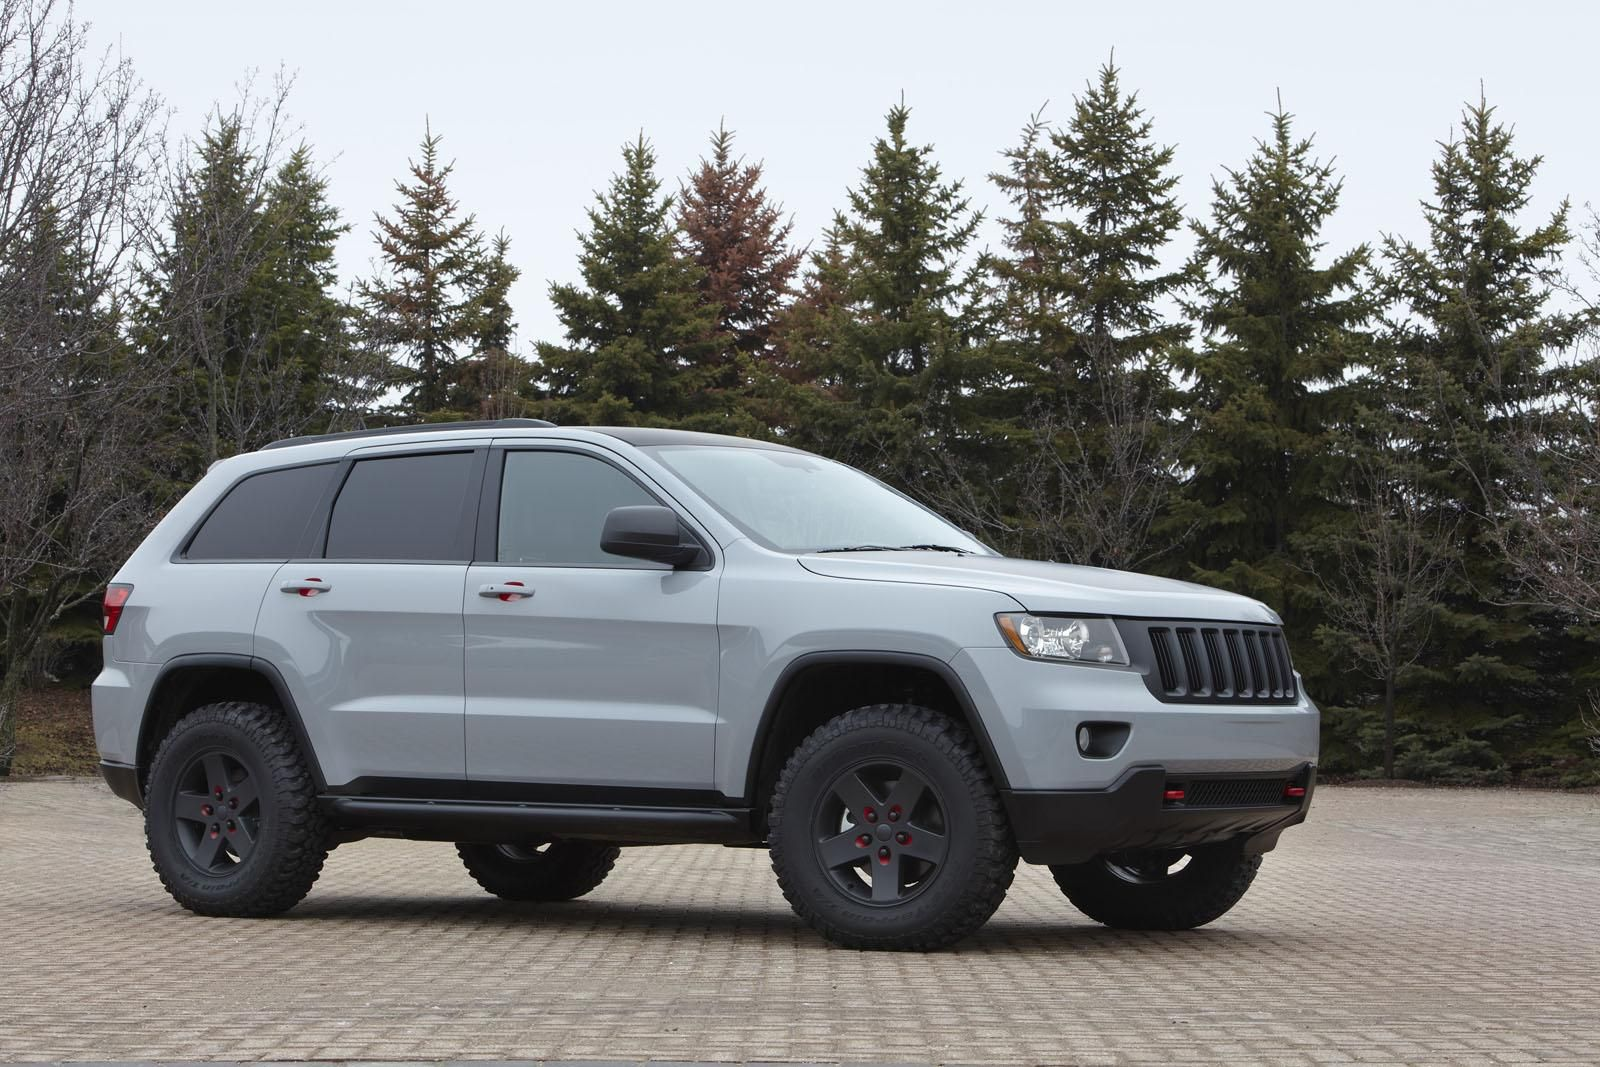 2012 jeep grand cherokee white google search off. Black Bedroom Furniture Sets. Home Design Ideas